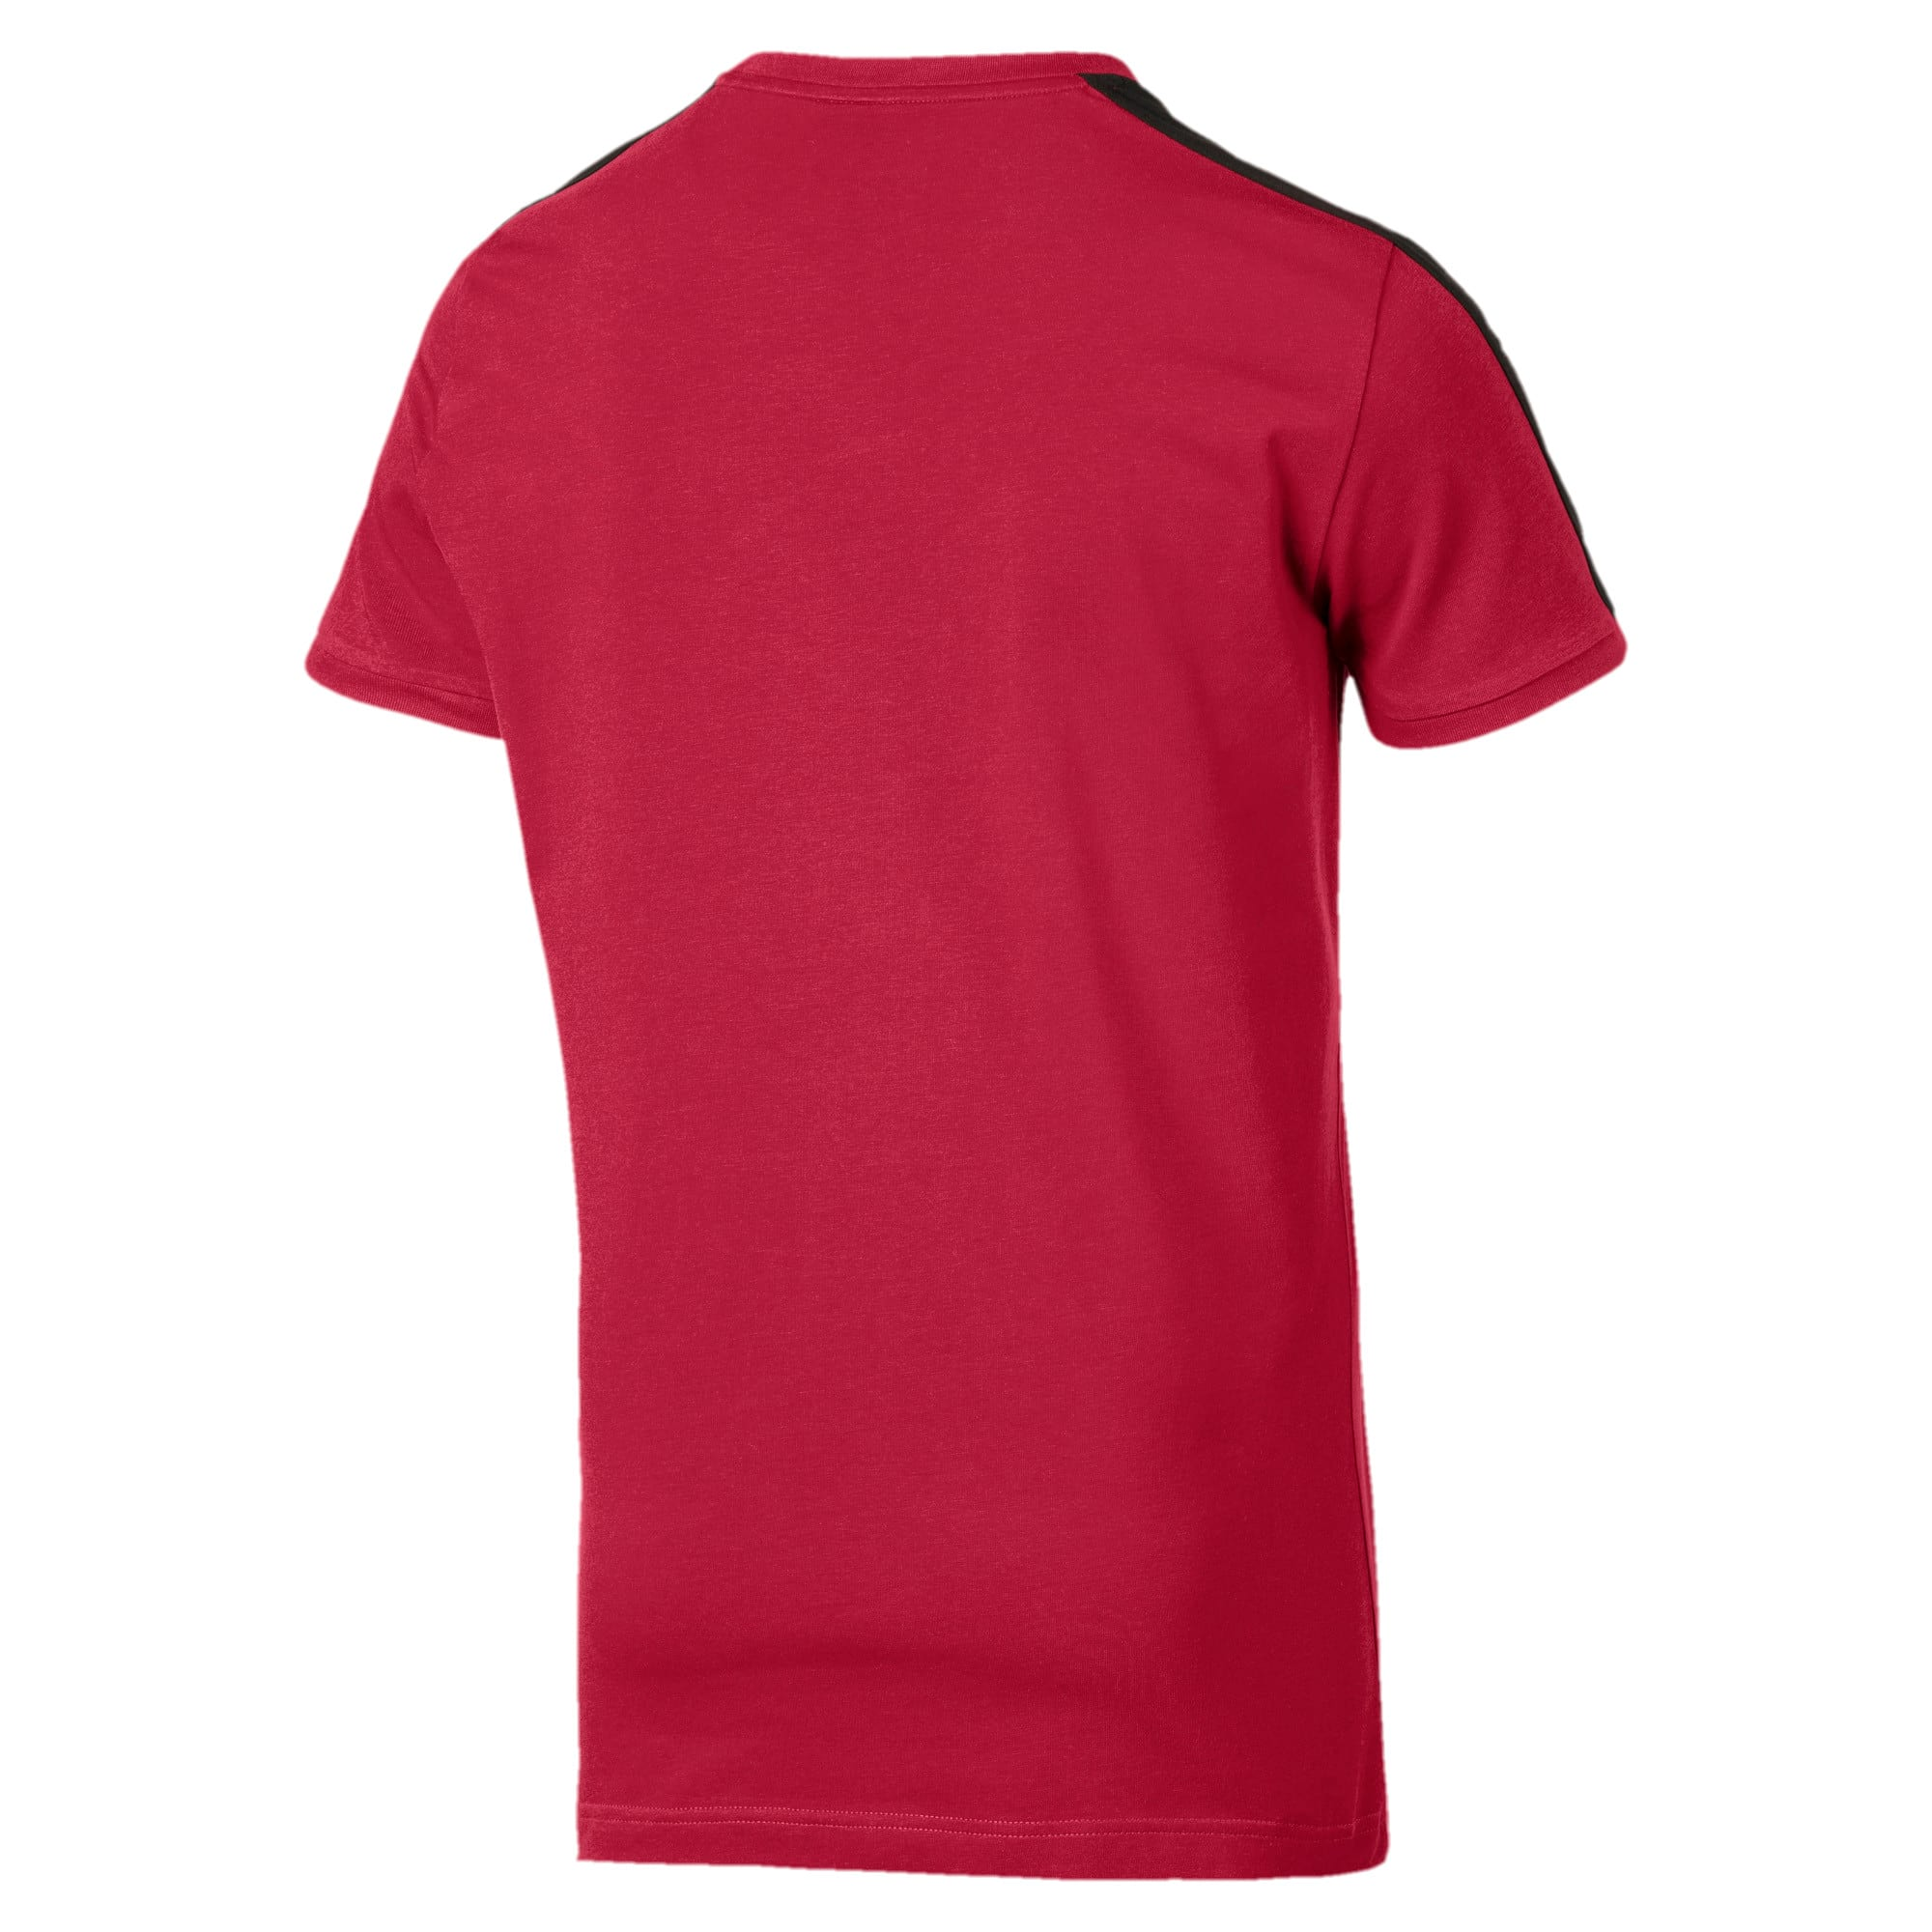 Iconic T7 Men's Tee, Rhubarb, large